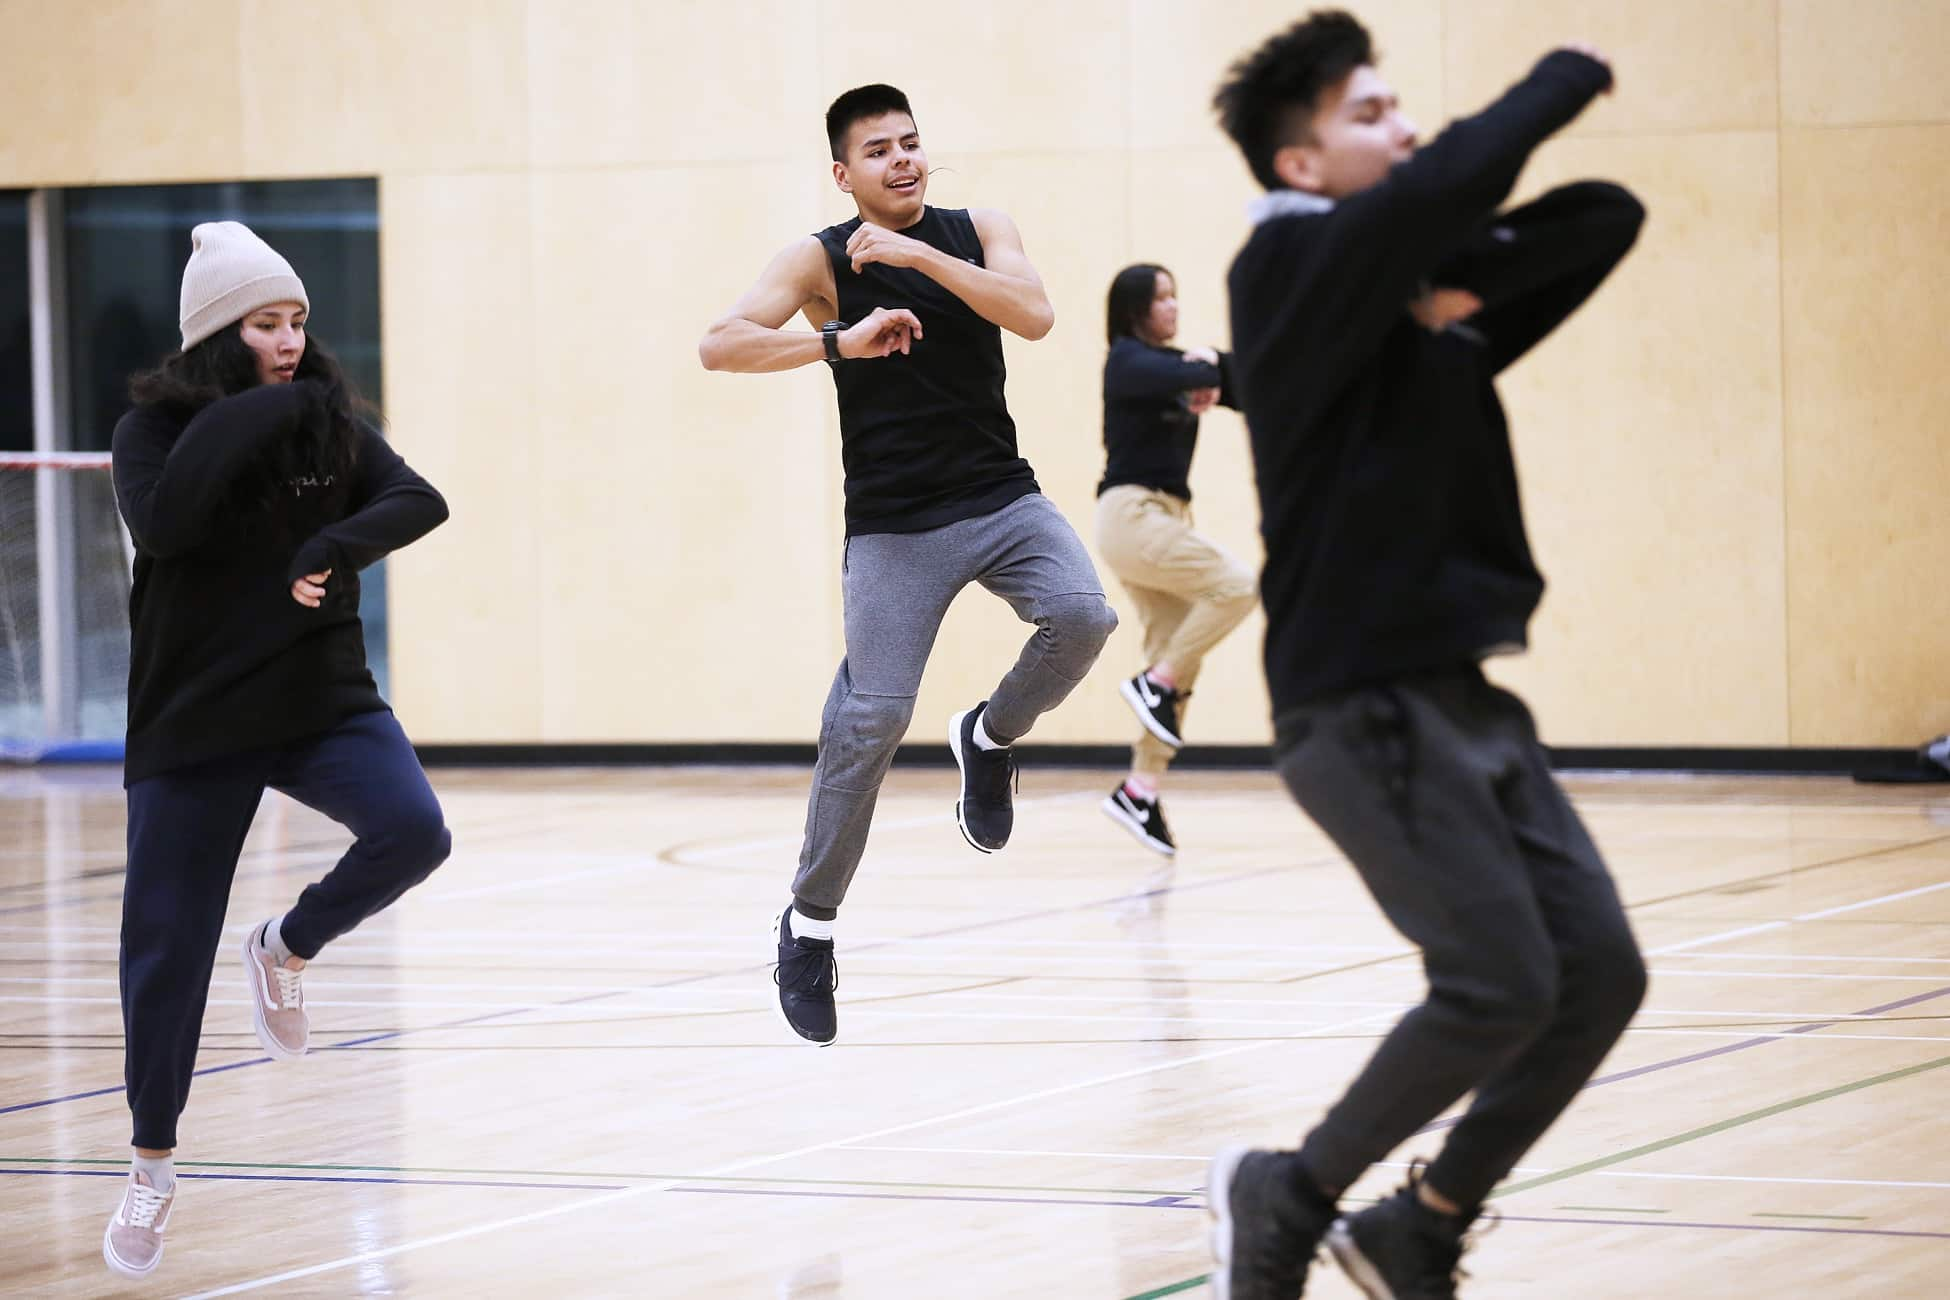 Ryan Ross participates in the Outside Looking In hiphop dance class at Southeast Collegiate on Thursday, February 20. The after school dance program encourages students to stay in school and graduate as they earn a credit by participating every week. (John Woods / Winnipeg Free Press)